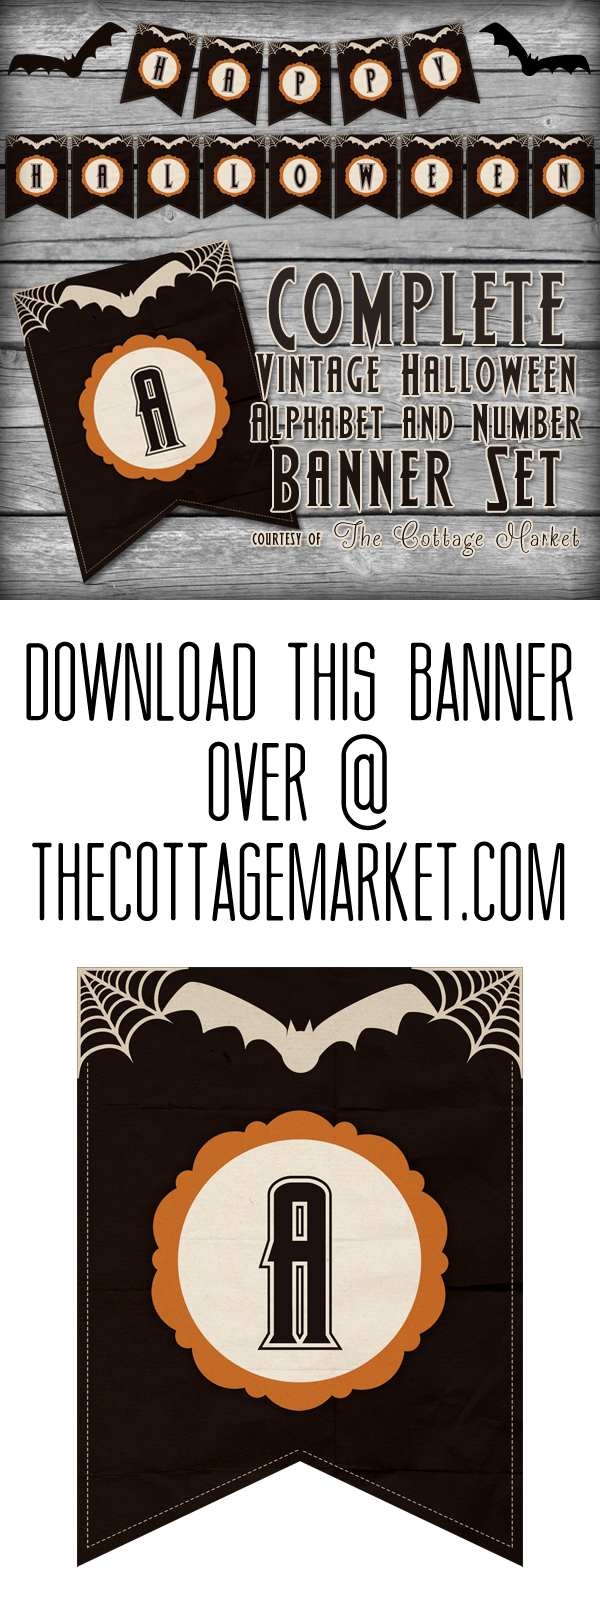 image relating to Halloween Banner Printable called Absolutely free Printable Halloween Banner Fixed The Cottage Current market